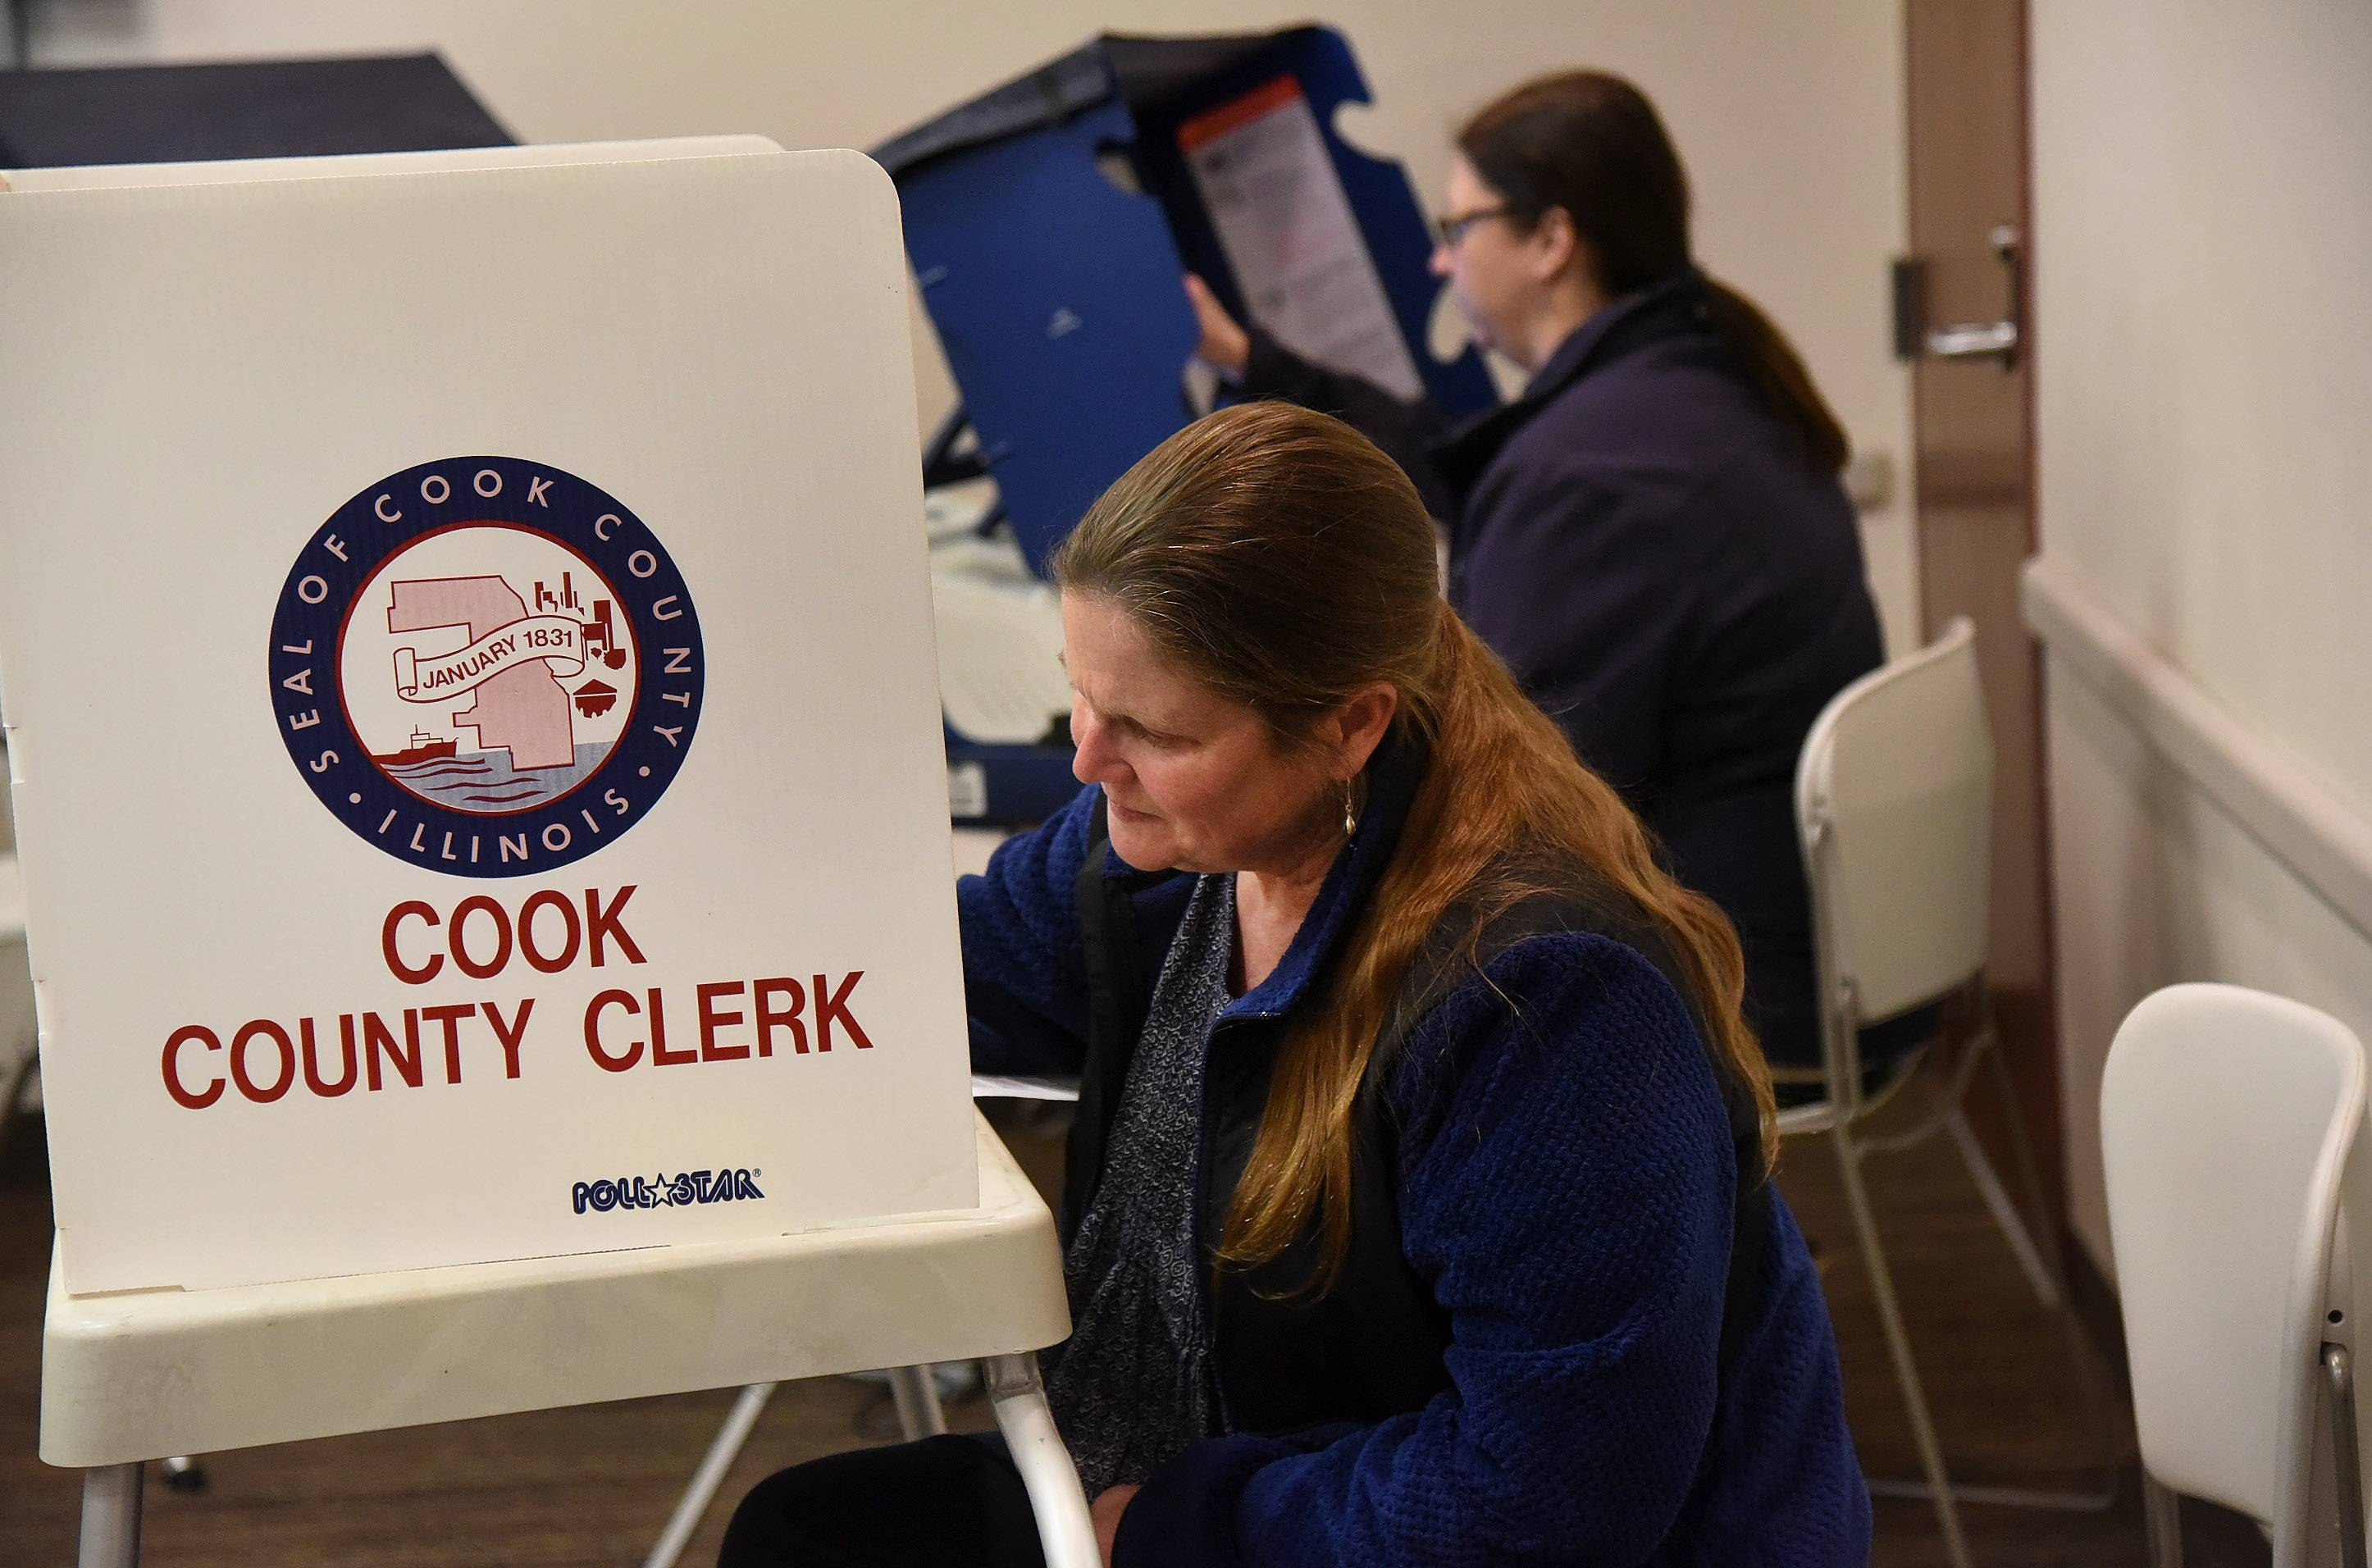 Voter turnout dropped across the suburbs this year, even in some highly contested races.